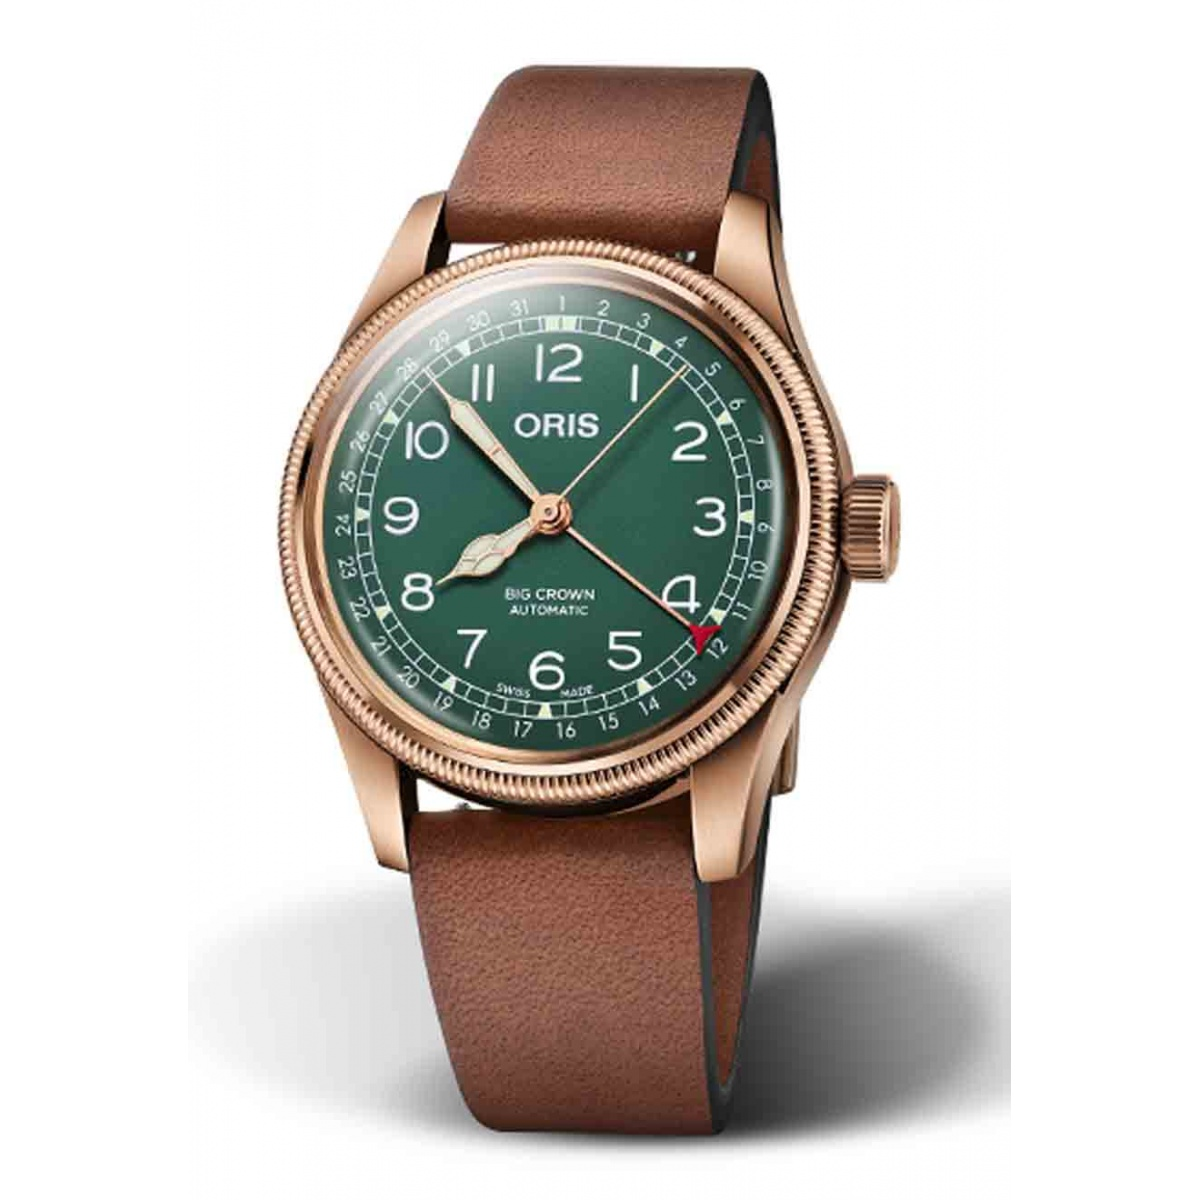 ORIS BIG CROWN POINTER DATE 80TH ANNIVERSARY EDITION 50 M ∅40 mm, Esfera verde